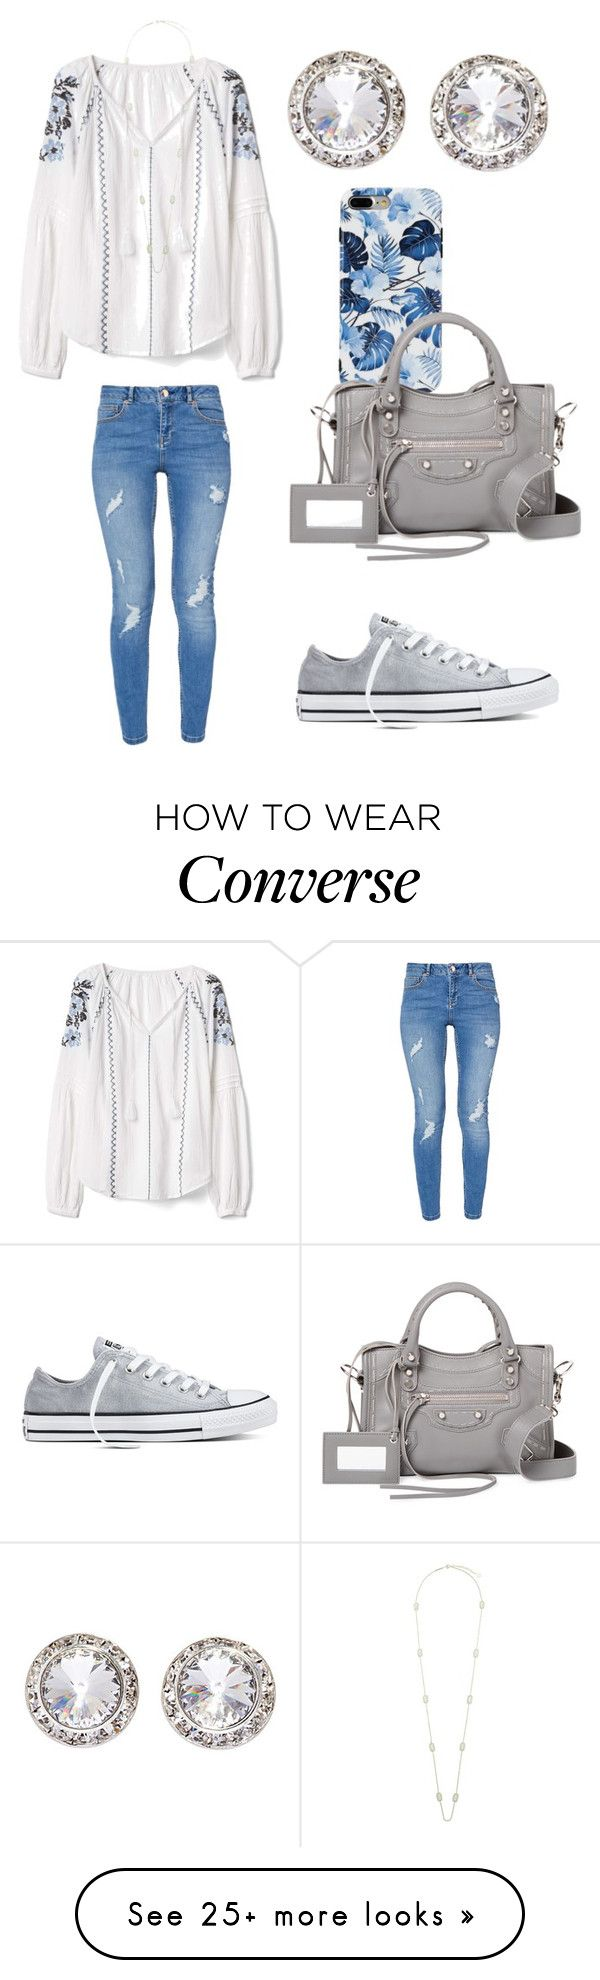 """""""Rainy day"""" by sarahfohlen on Polyvore featuring Gap, Balenciaga, Converse, Ted Baker, Kendra Scott, Summer and 2k17"""